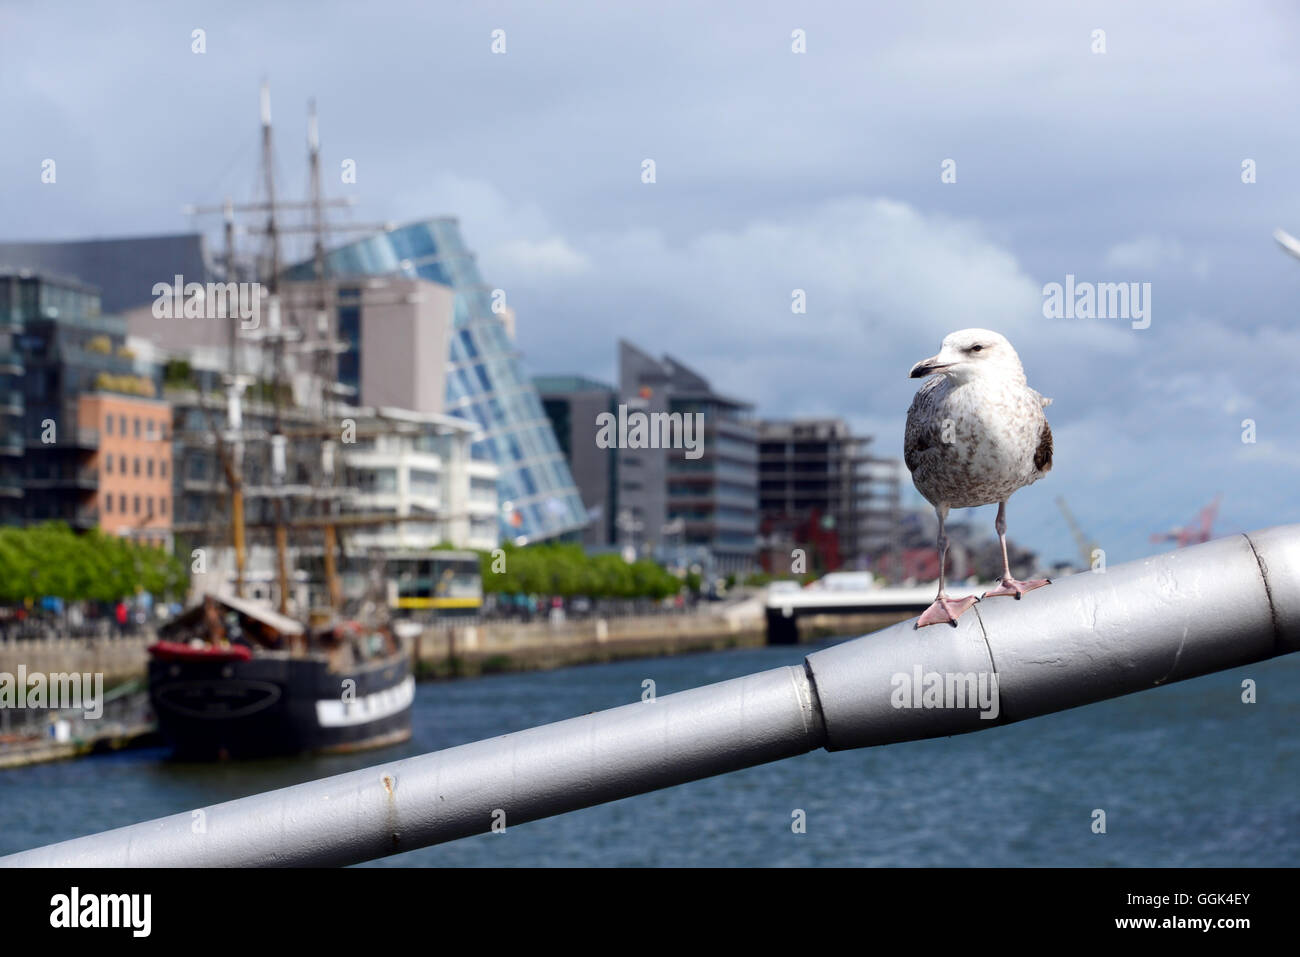 view over the Liffey River, Convention Centre Dublin, CCD, Docklands, Dublin, Ireland - Stock Image